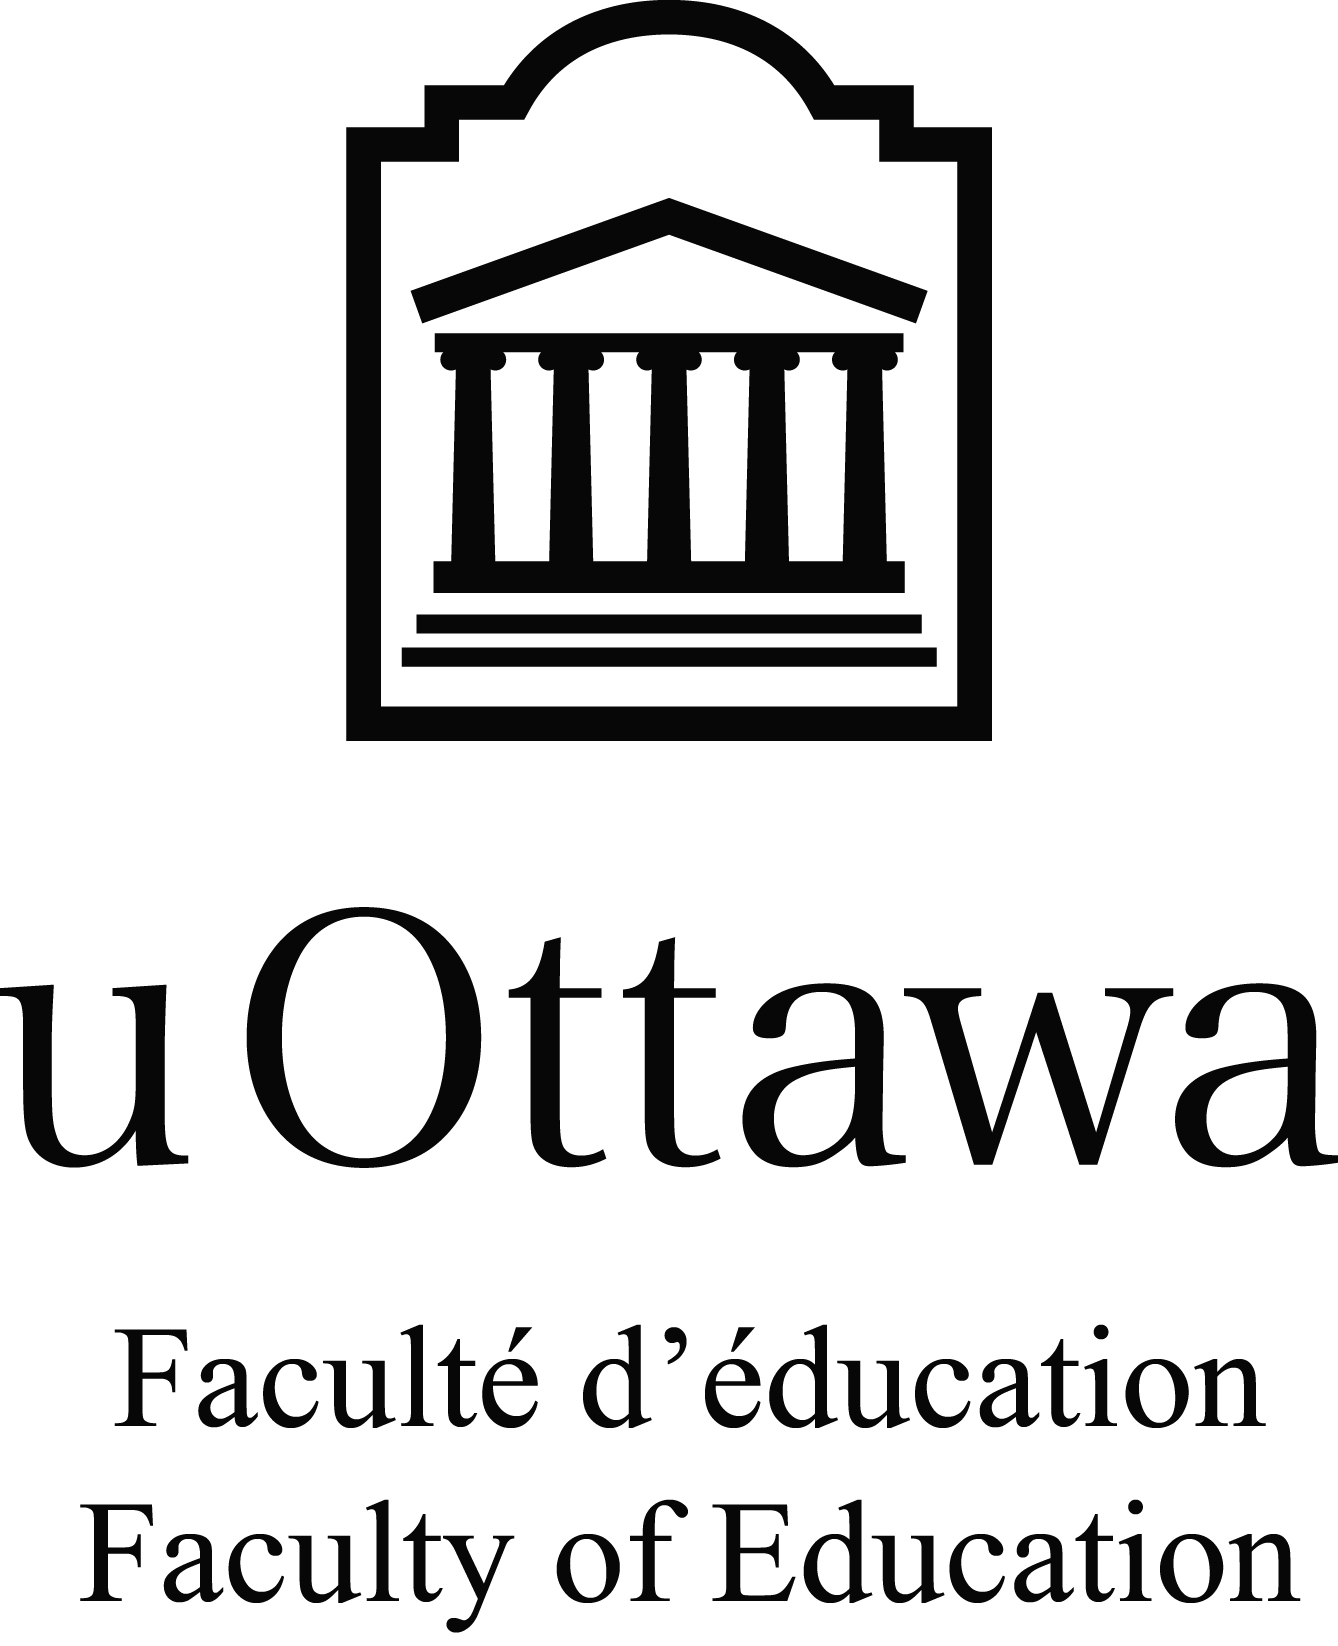 uottawa powerpoint template health sciences  Logos and templates | Faculty of Education | University of Ottawa